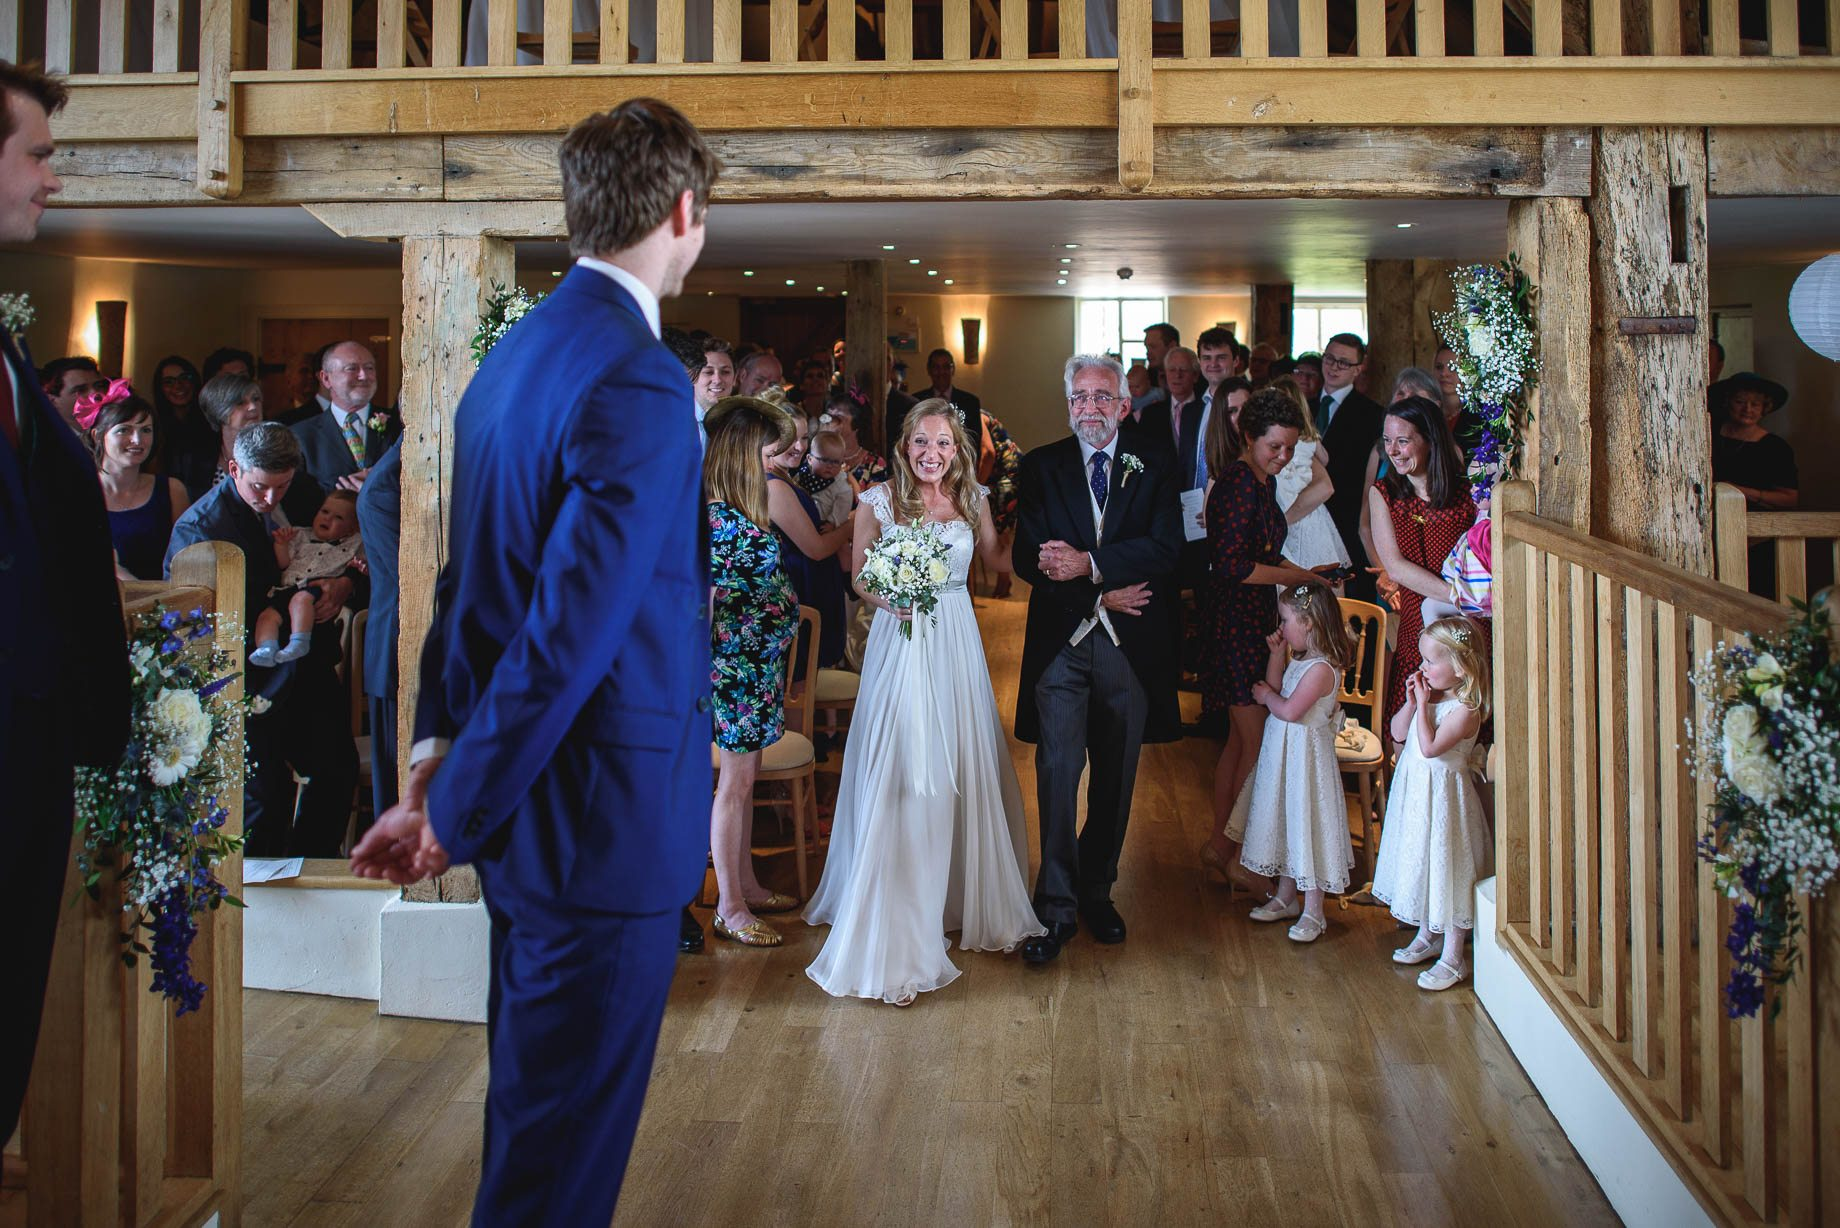 Bury Court Barn wedding photography by Guy Collier - Heather and Pat (36 of 170)